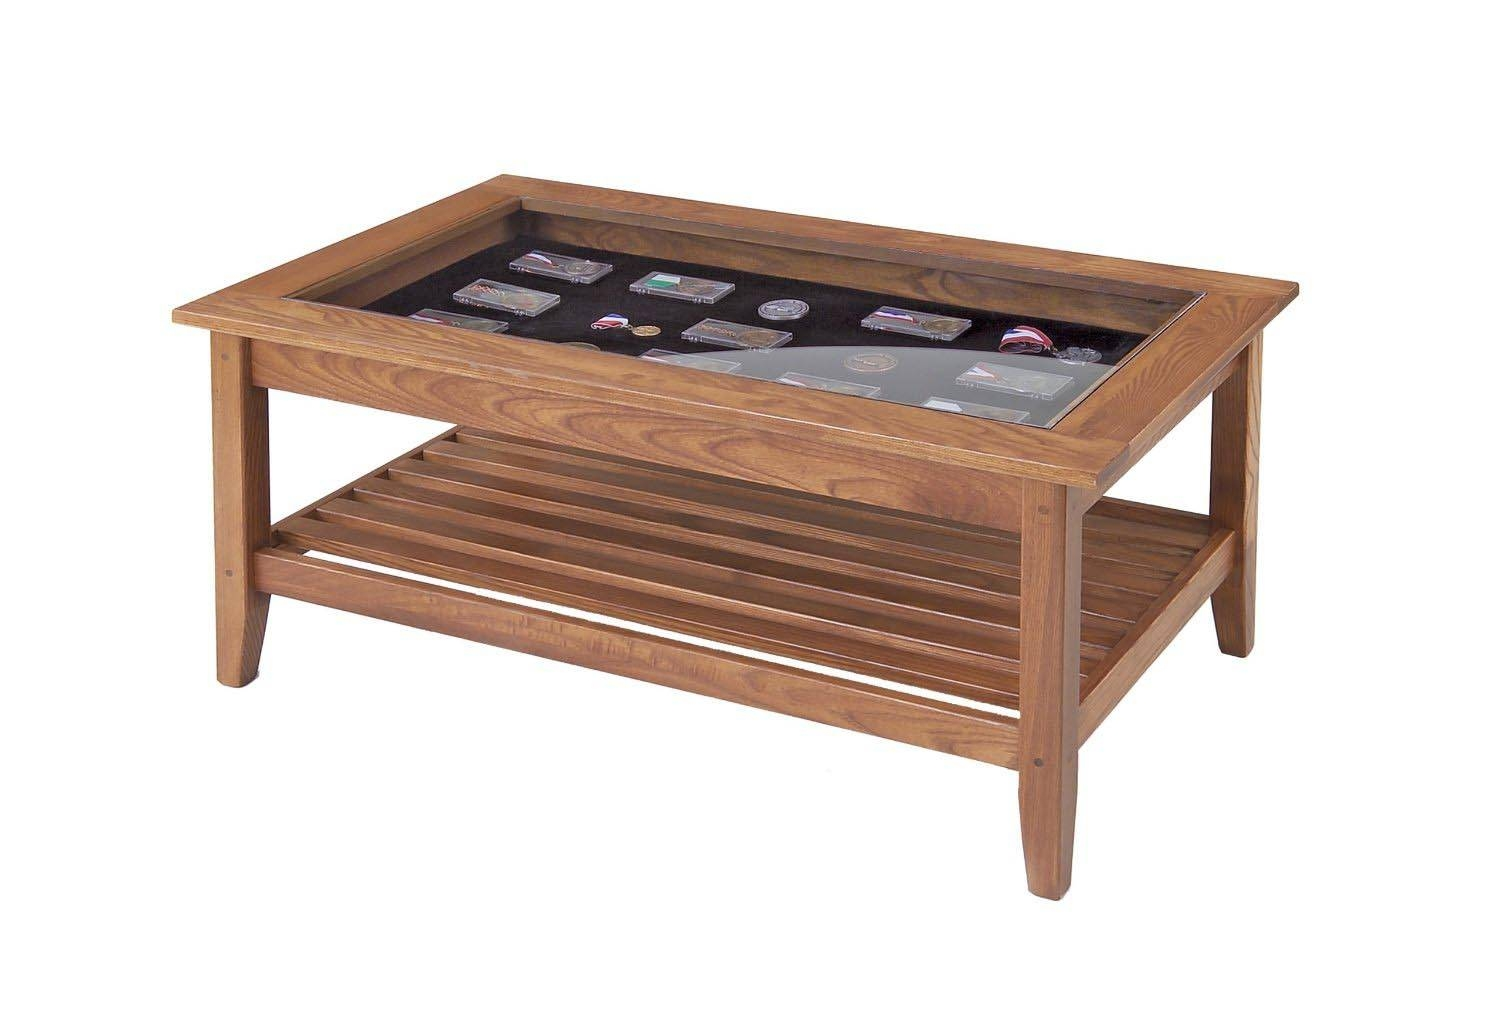 Glass Top Display Coffee Table With Drawers | Coffee Table Design throughout Glass Top Display Coffee Tables With Drawers (Image 24 of 30)